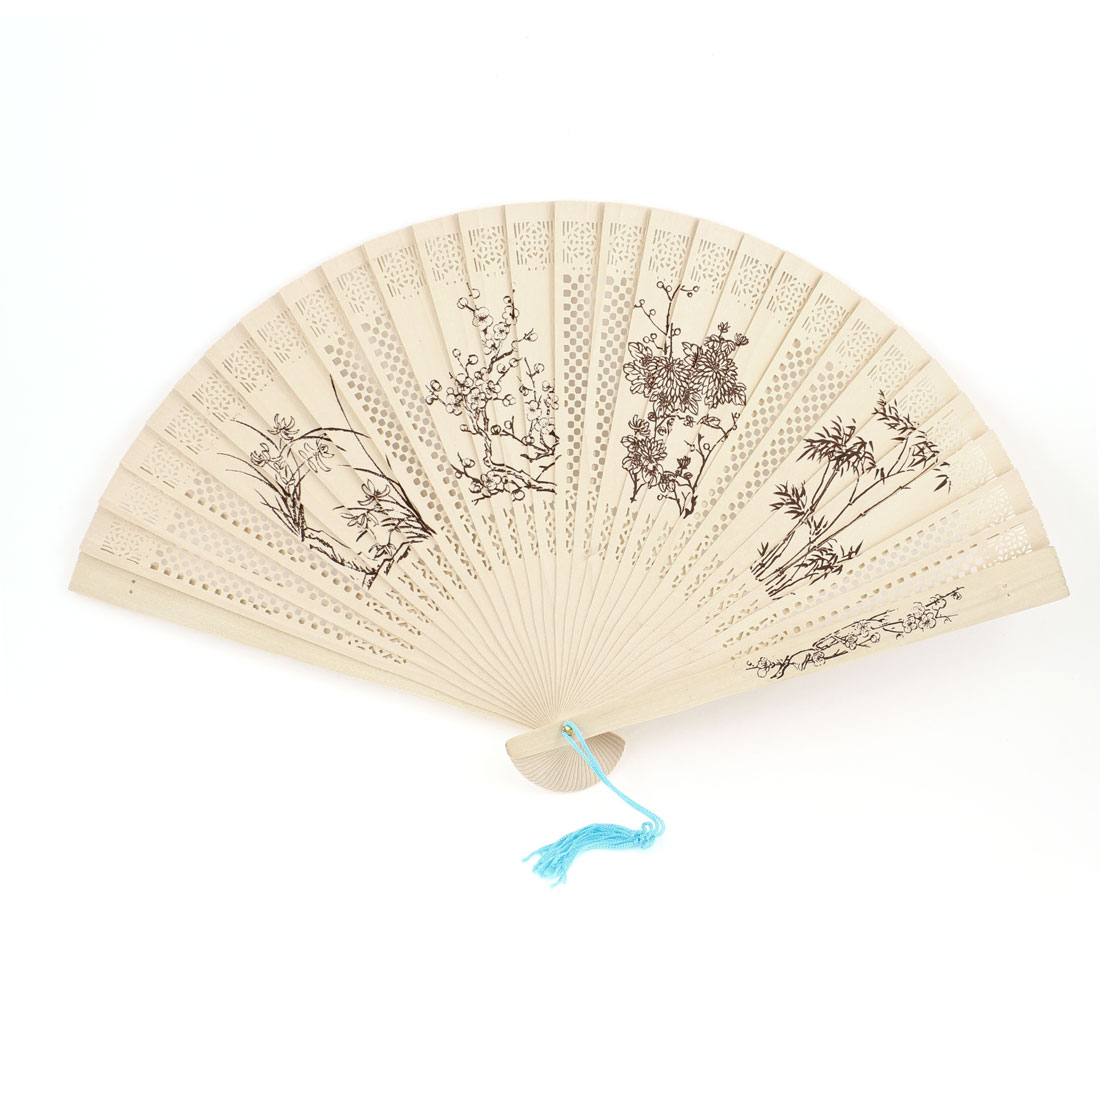 Sandalwood Wintersweet Bamboo Orchid Mum Pattern Cut Out Folding Hand Fan